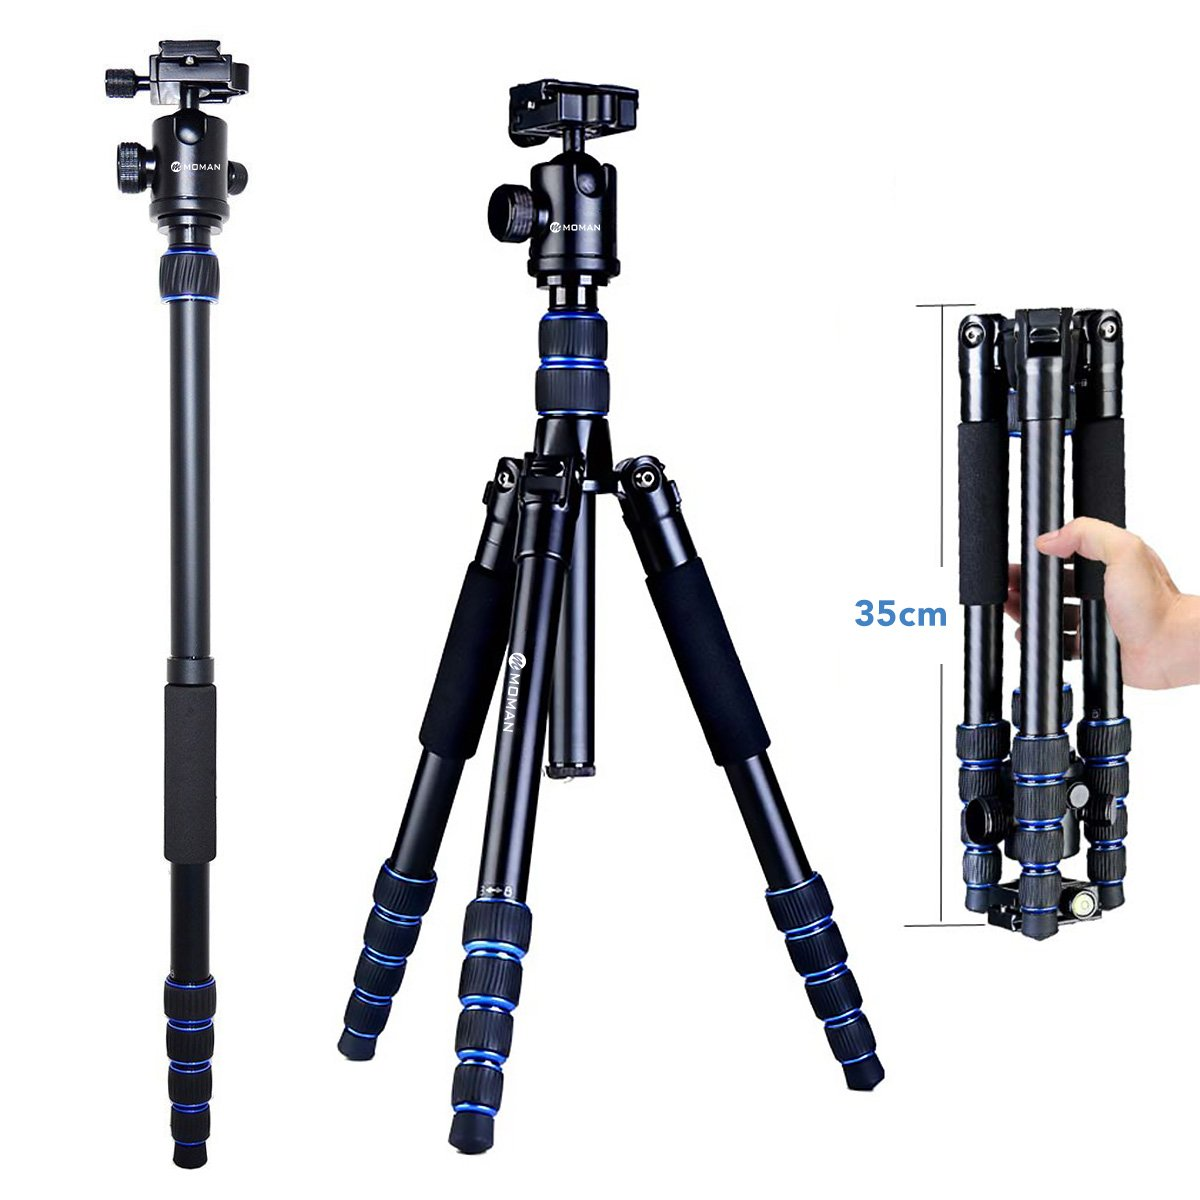 Moman Camera Tripod Monopod Alpenstock with Ball Head, Aluminum Alloy, Foldable Axis Inversion Design, Weight Capacity of 33 Lb